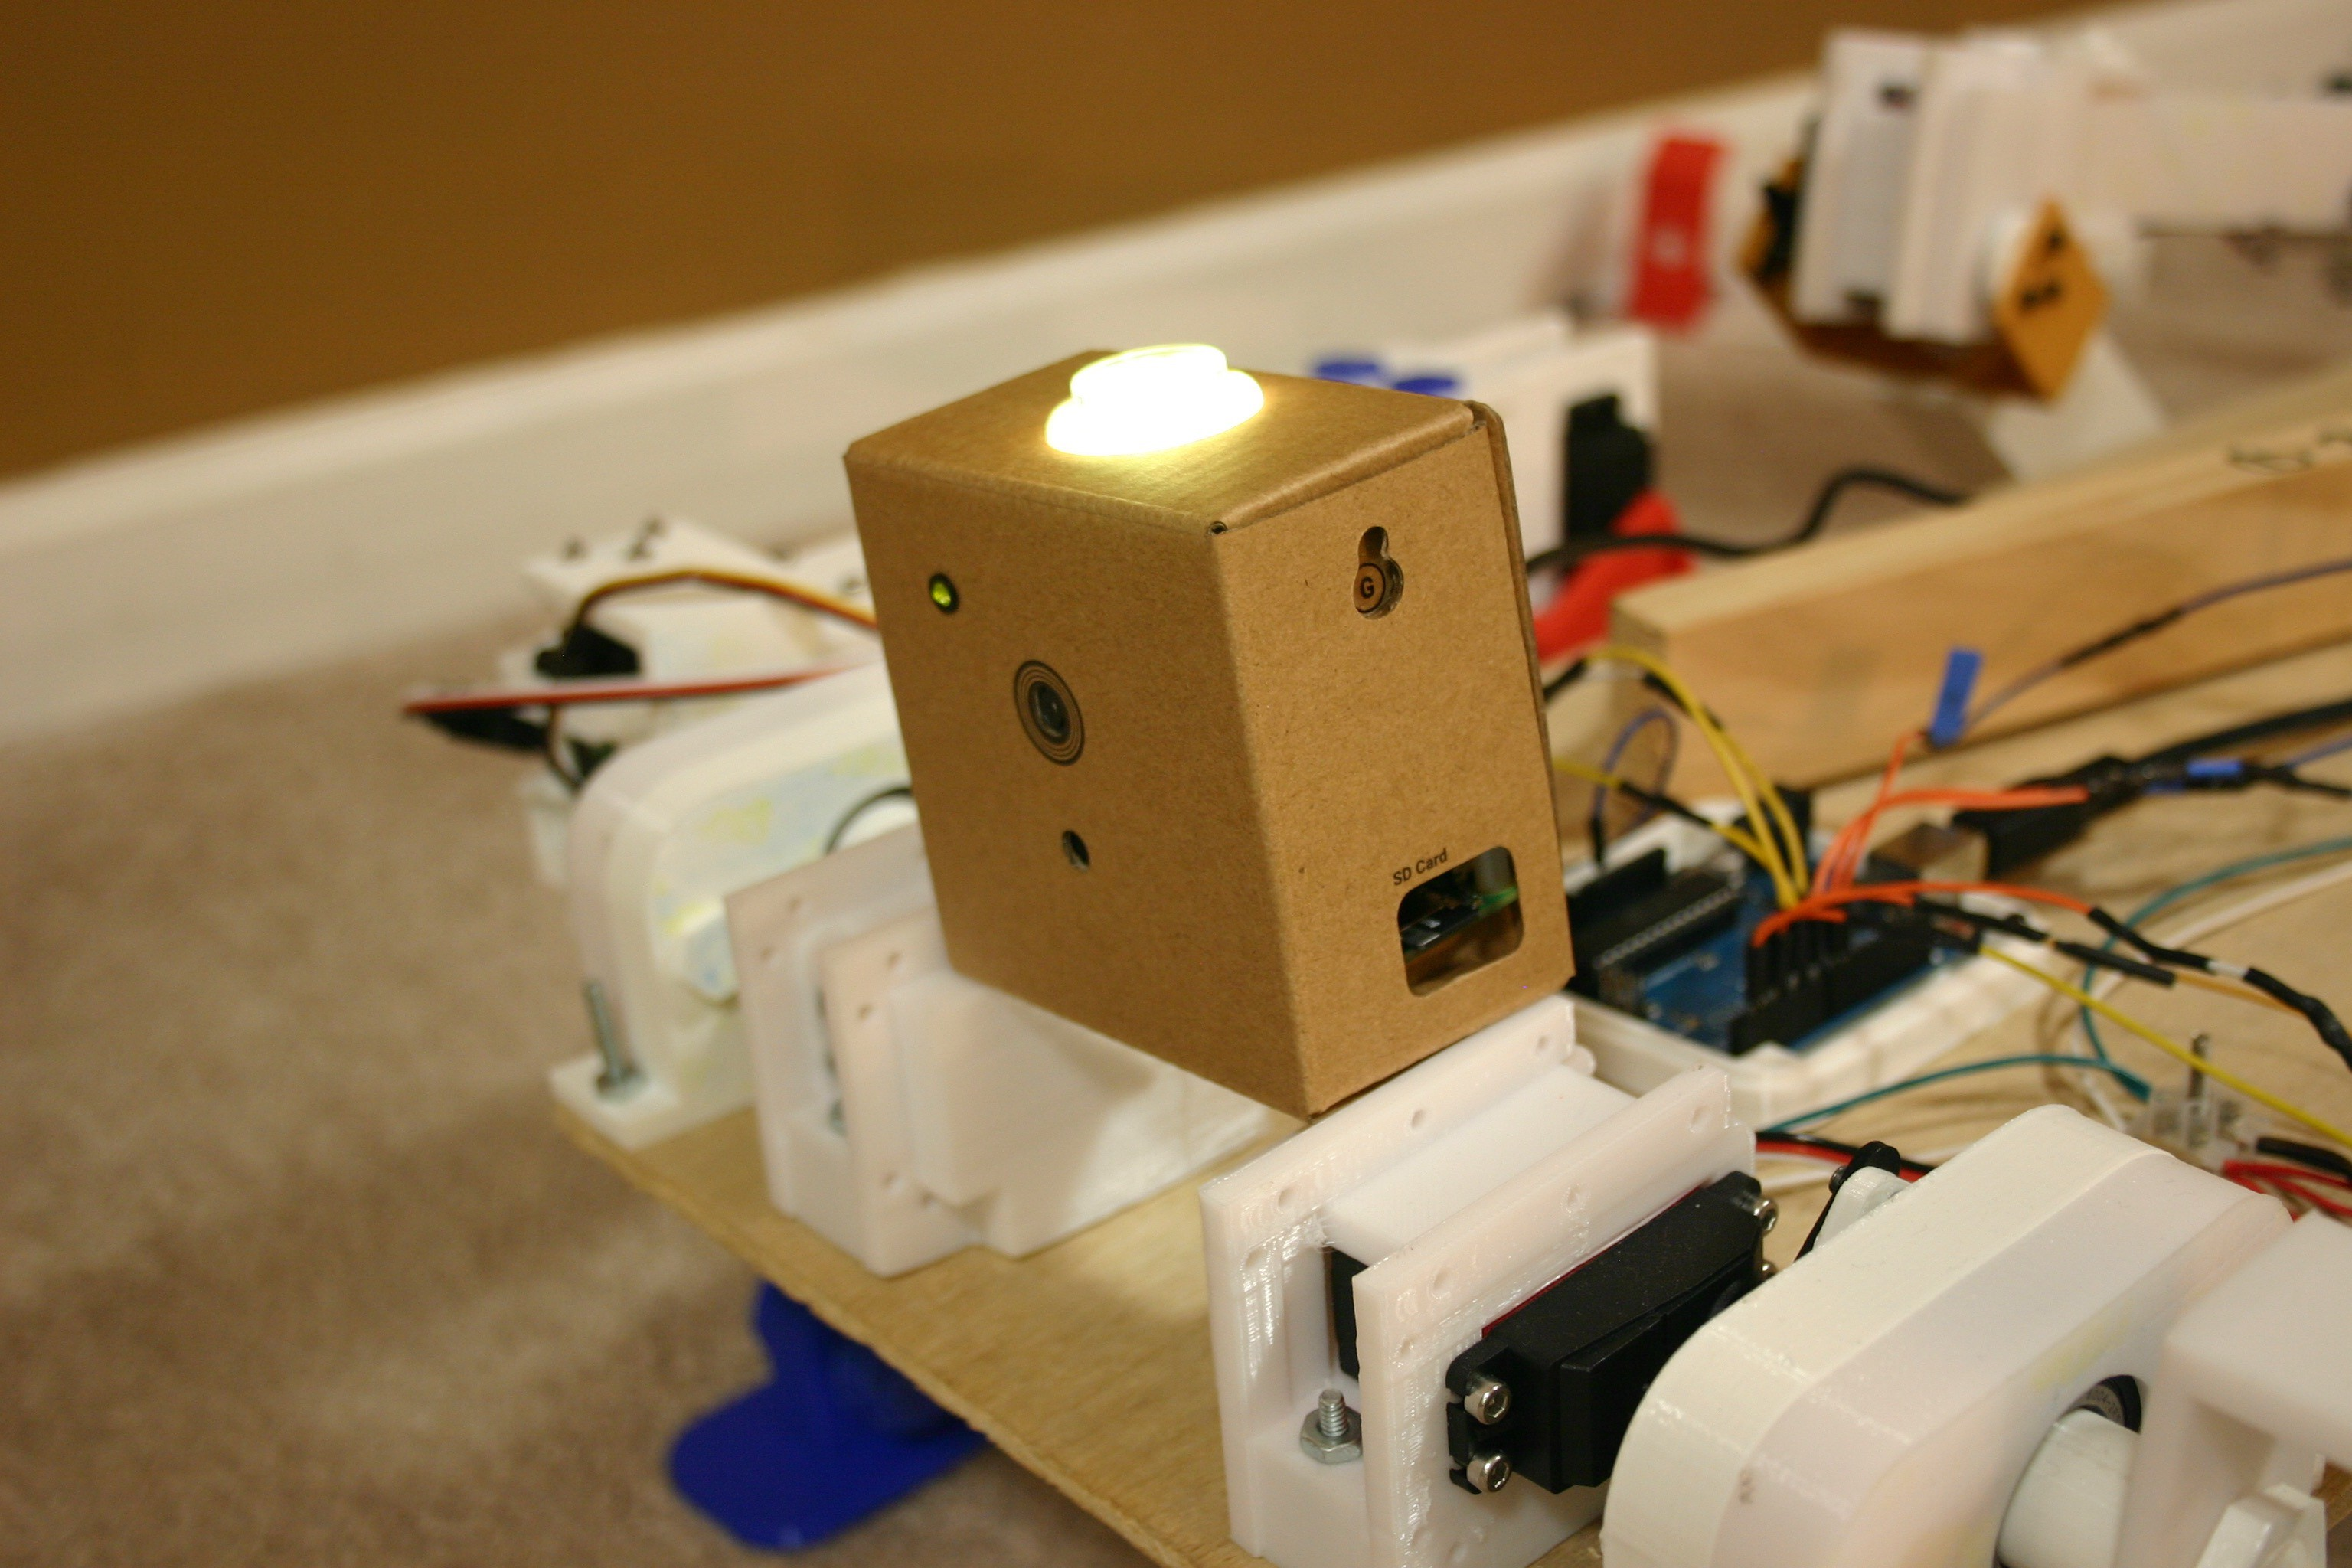 Mikes Robot Dog Piezoelectric Amplifier Circuit Hacked Gadgets Diy Tech Blog When There Is A Smile The Light Turns Yellow Big Will Turn Bright And Trigger Piezo Buzzer